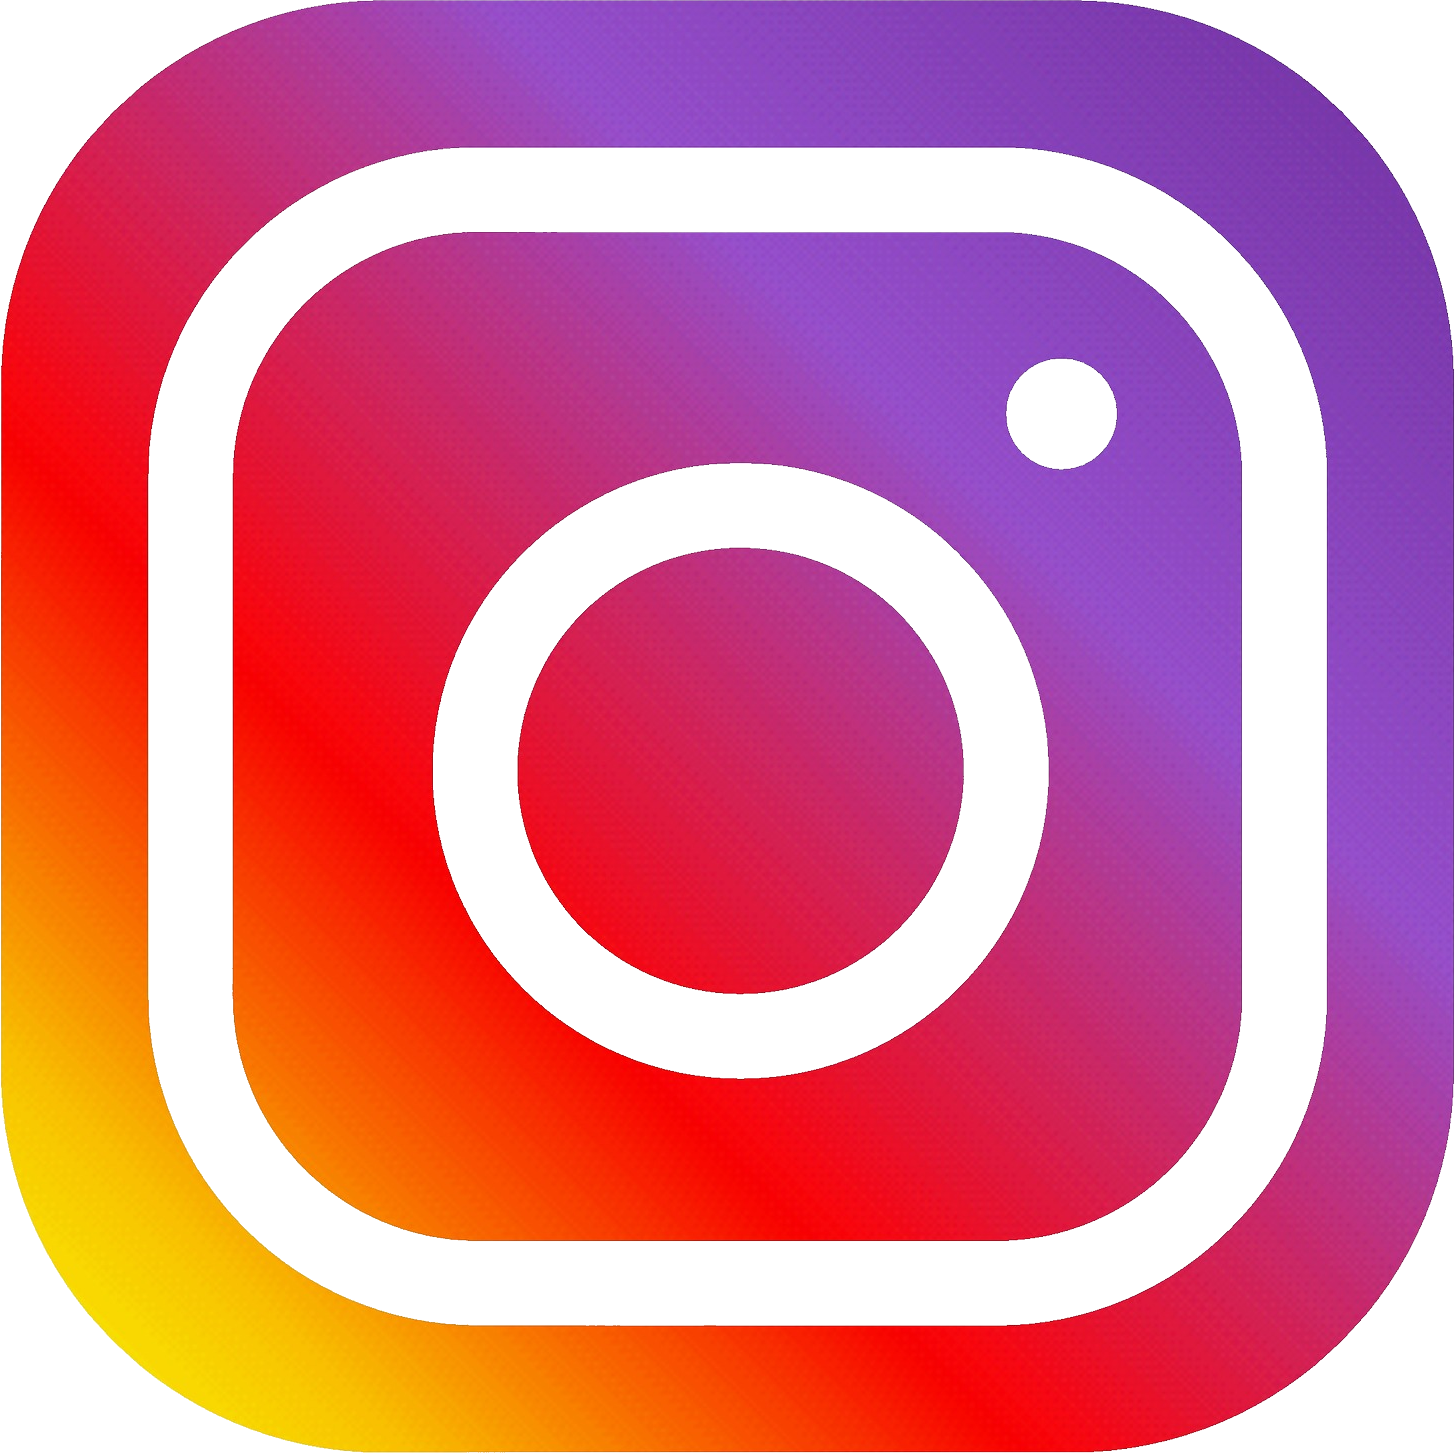 Instagram icon png. Hq transparent images pluspng